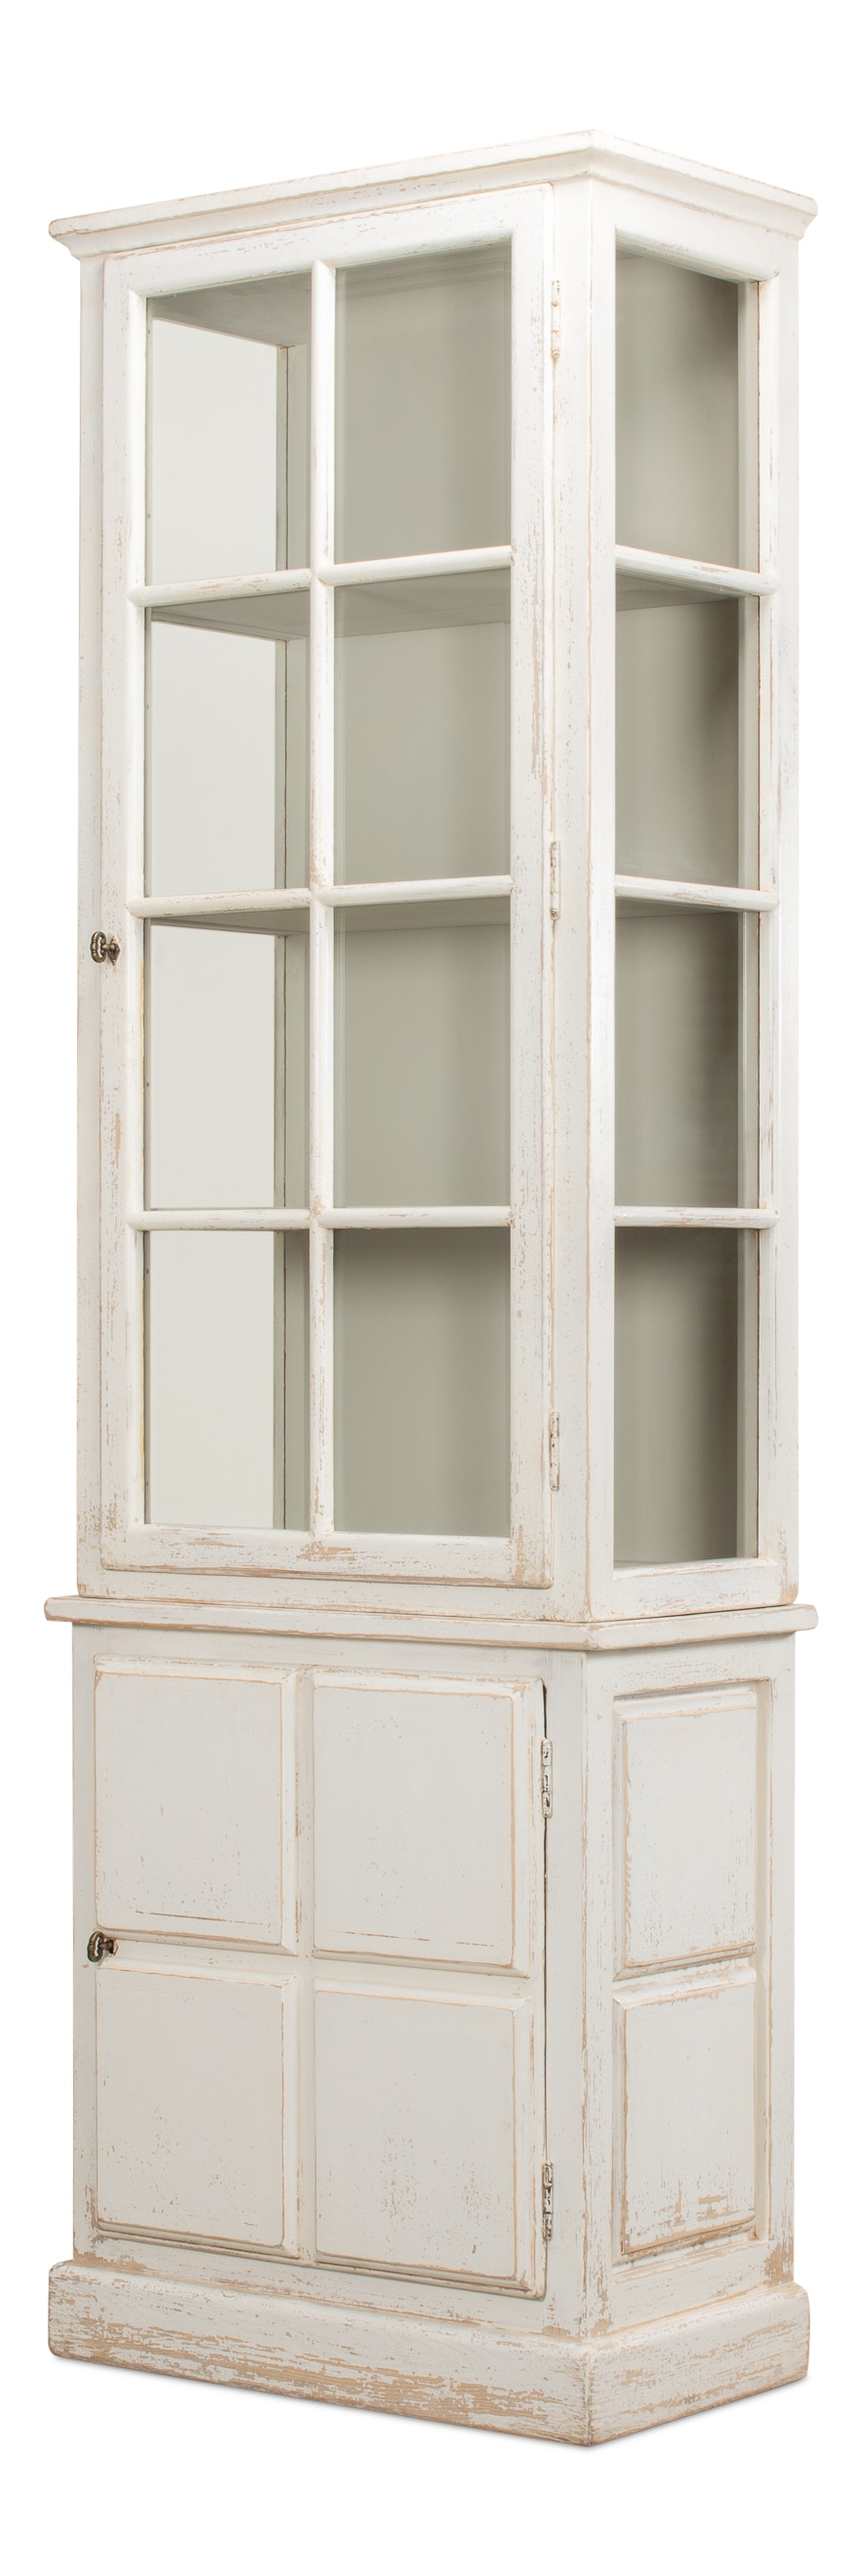 40376. Book Cabinet Tower